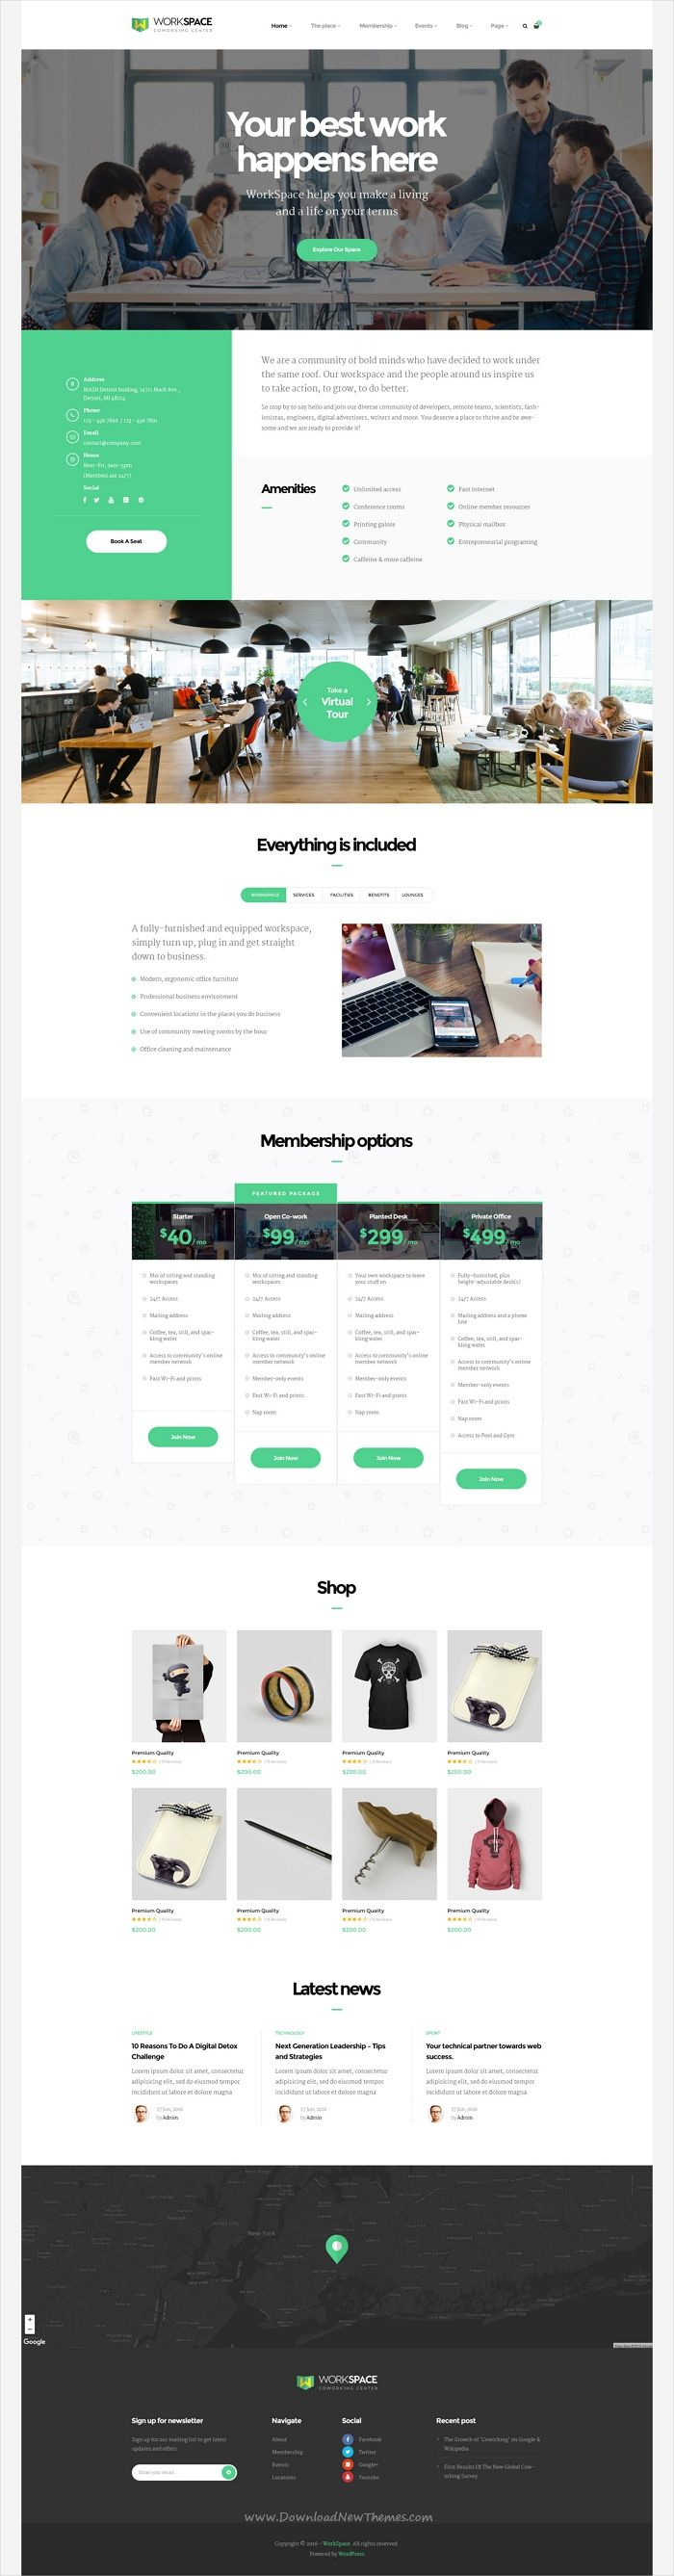 Workspace is a creative 3in1 responsive #WordPress theme for #Coworking Spaces, Open #Office, #Meeting, Conference Space Rentals, Corporate Company website download now➩ https://themeforest.net/item/workspace-creative-office-space-wordpress-theme/19356594?ref=Datasata